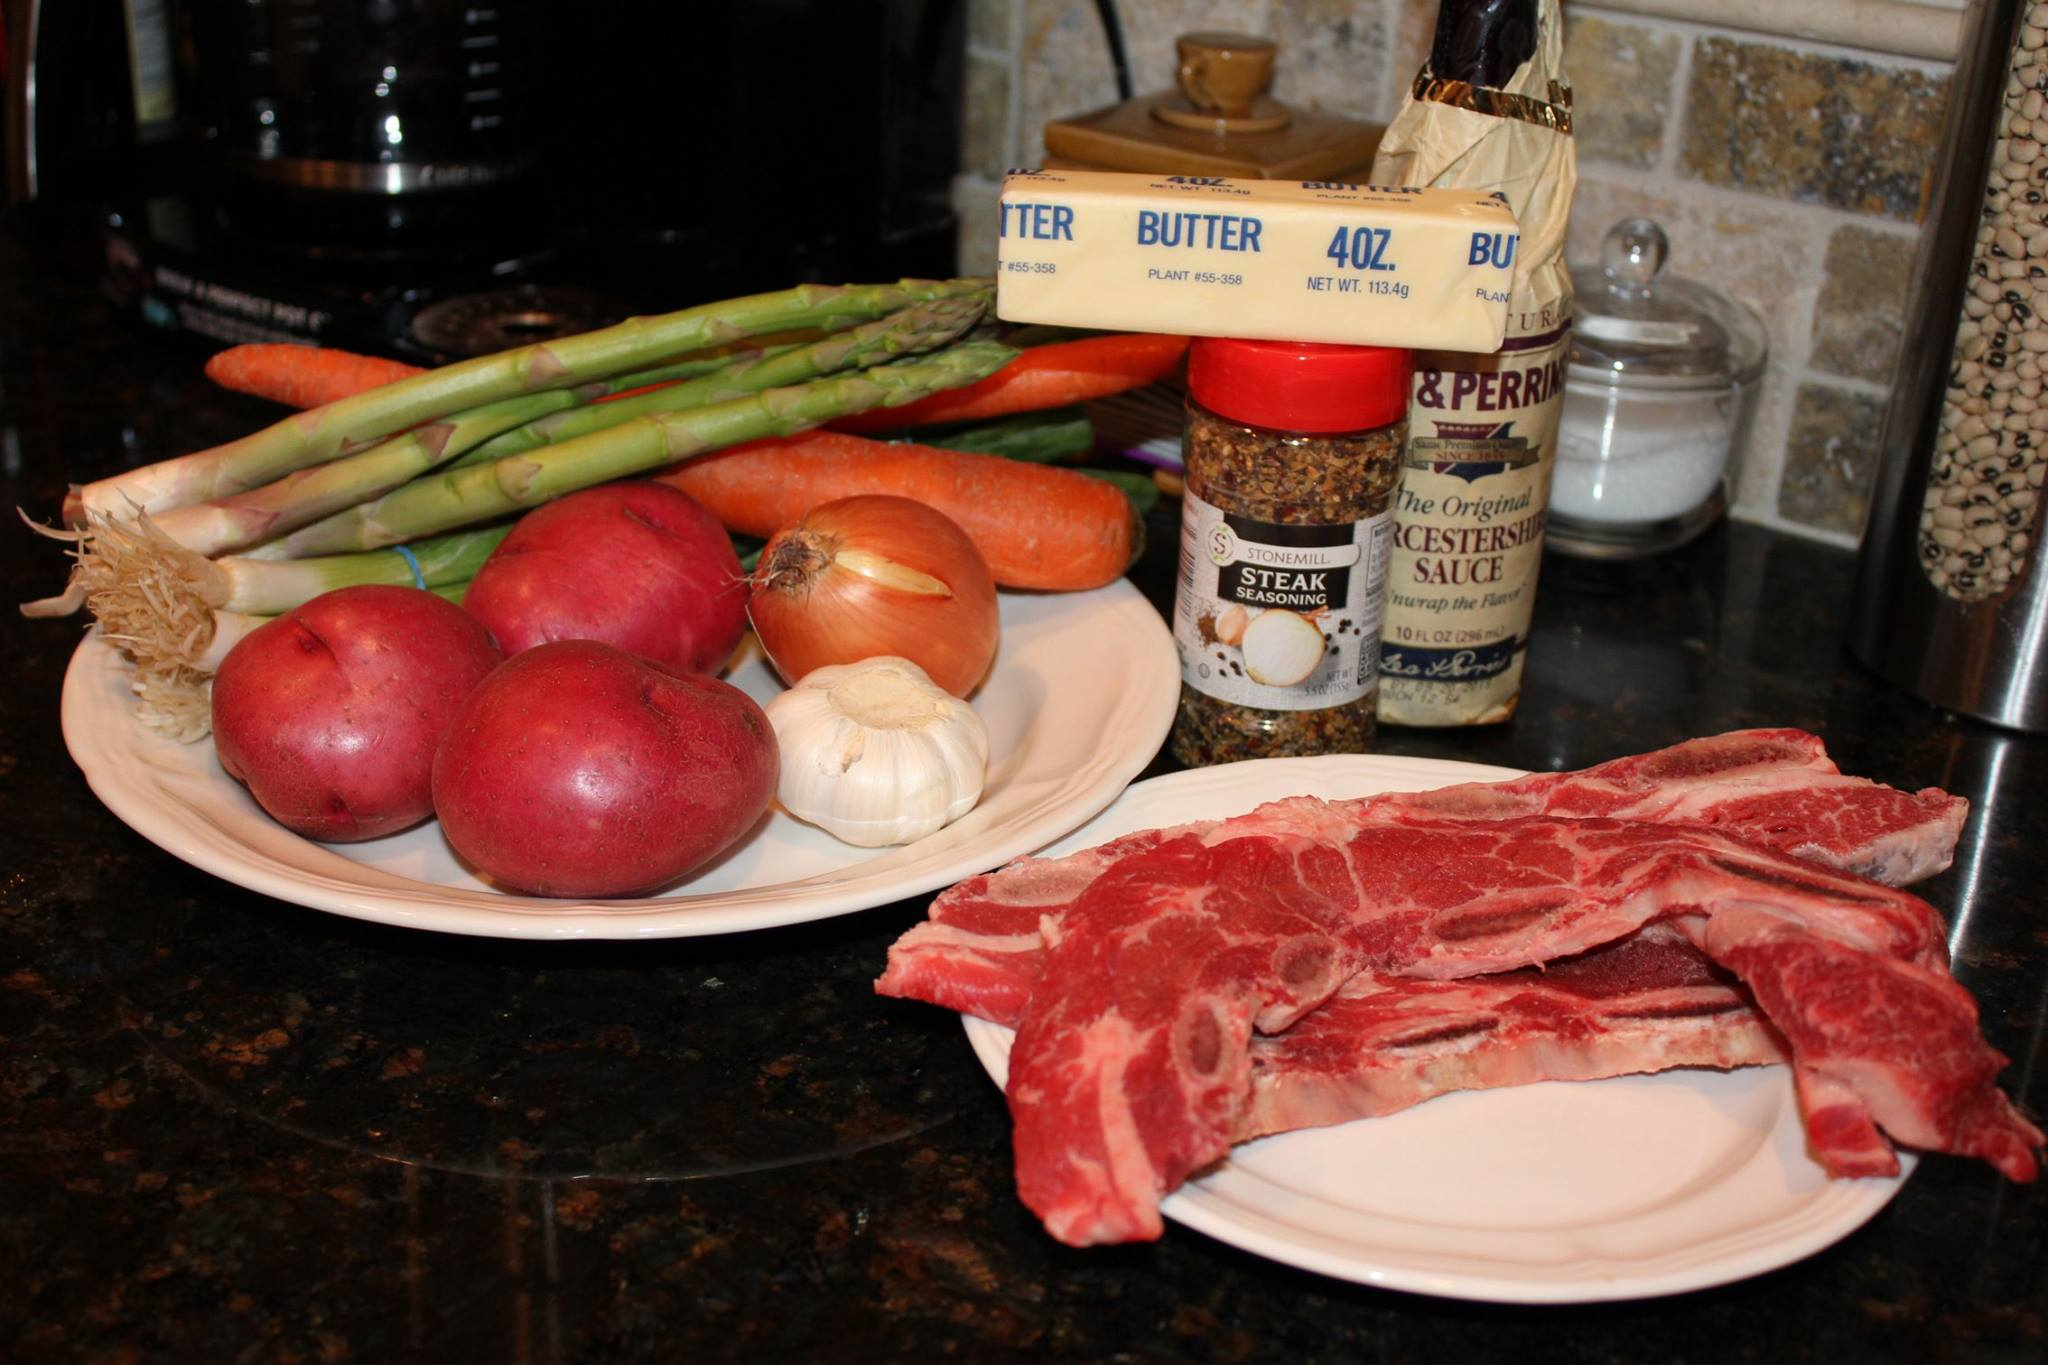 1st Things first gather the ingredients you will need for this meal    Ingredients   4 pounds boneless beef short ribs, cut into 3-inch long pieces.  Kosher salt and freshly ground black pepper.  2/3 cup light brown sugar.  1 teaspoon Hungarian paprika.  1/2 teaspoon garlic powder.  1 tablespoon white vinegar.  1/2 teaspoon dried ground thyme.  2/3 cup ketchup.  1 tablespoon yellow mustard  1 tablespoon Worcestershire sauce